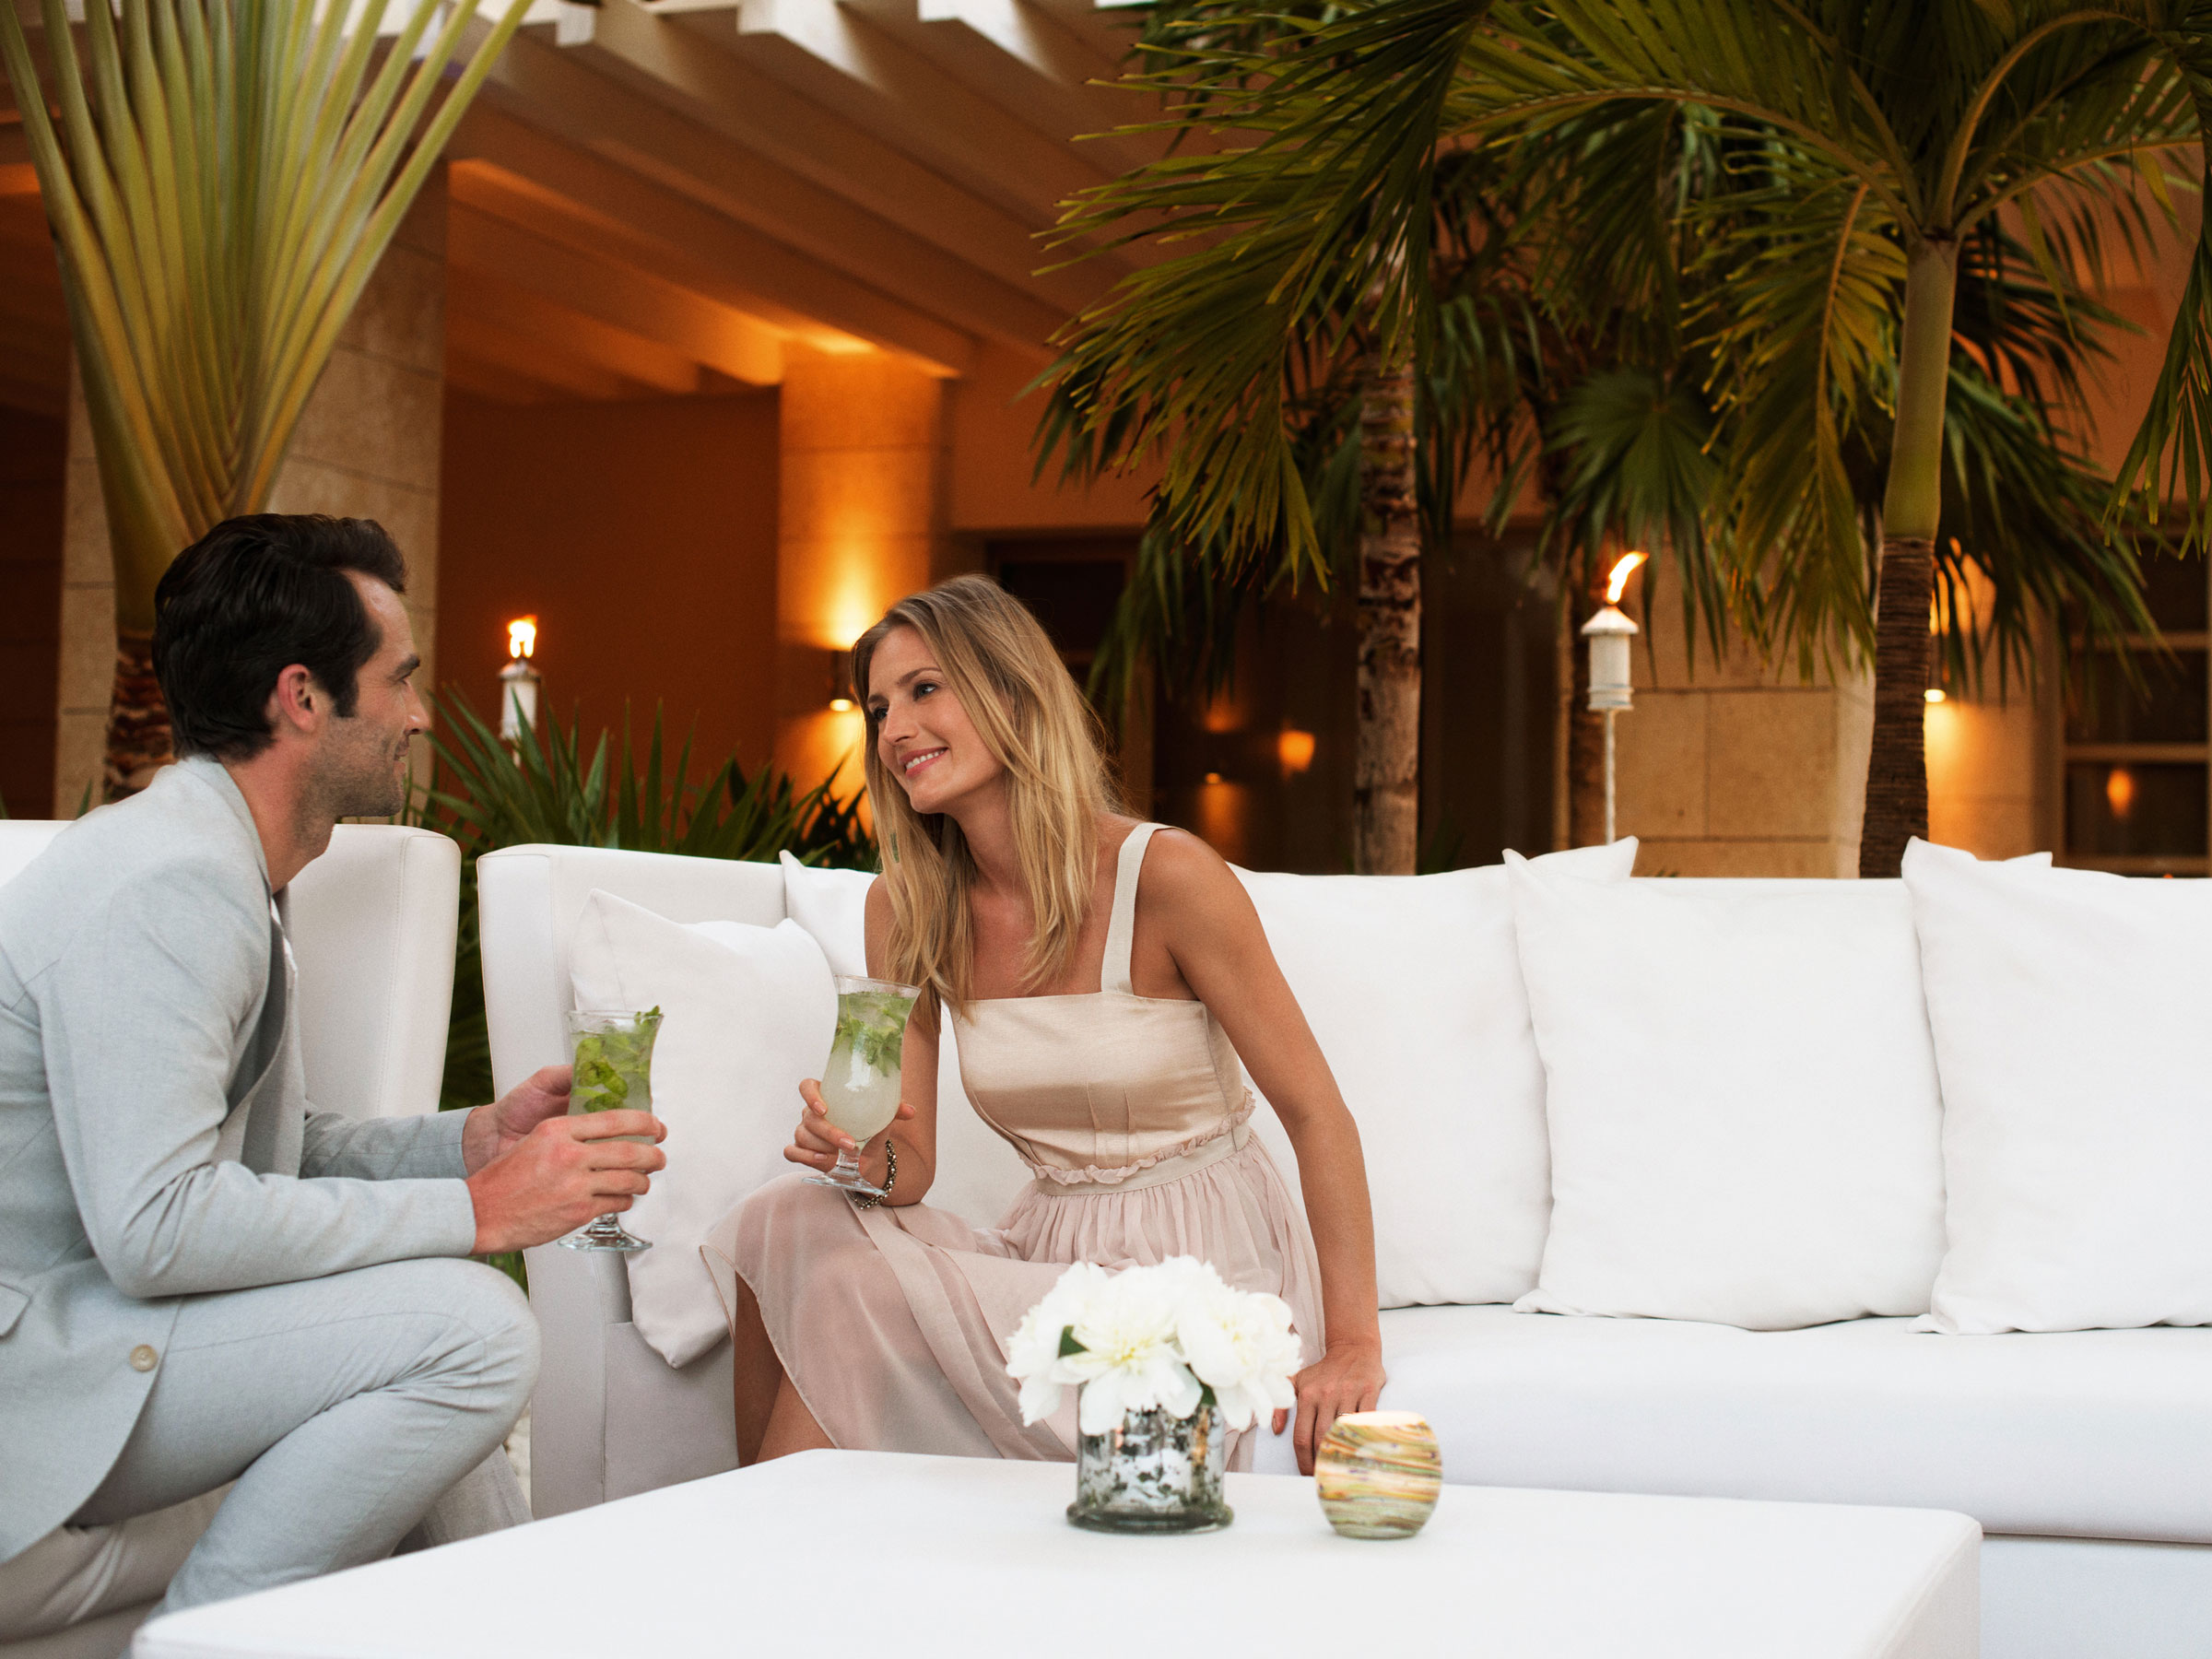 Romantic Getaways for Couples in Cancun